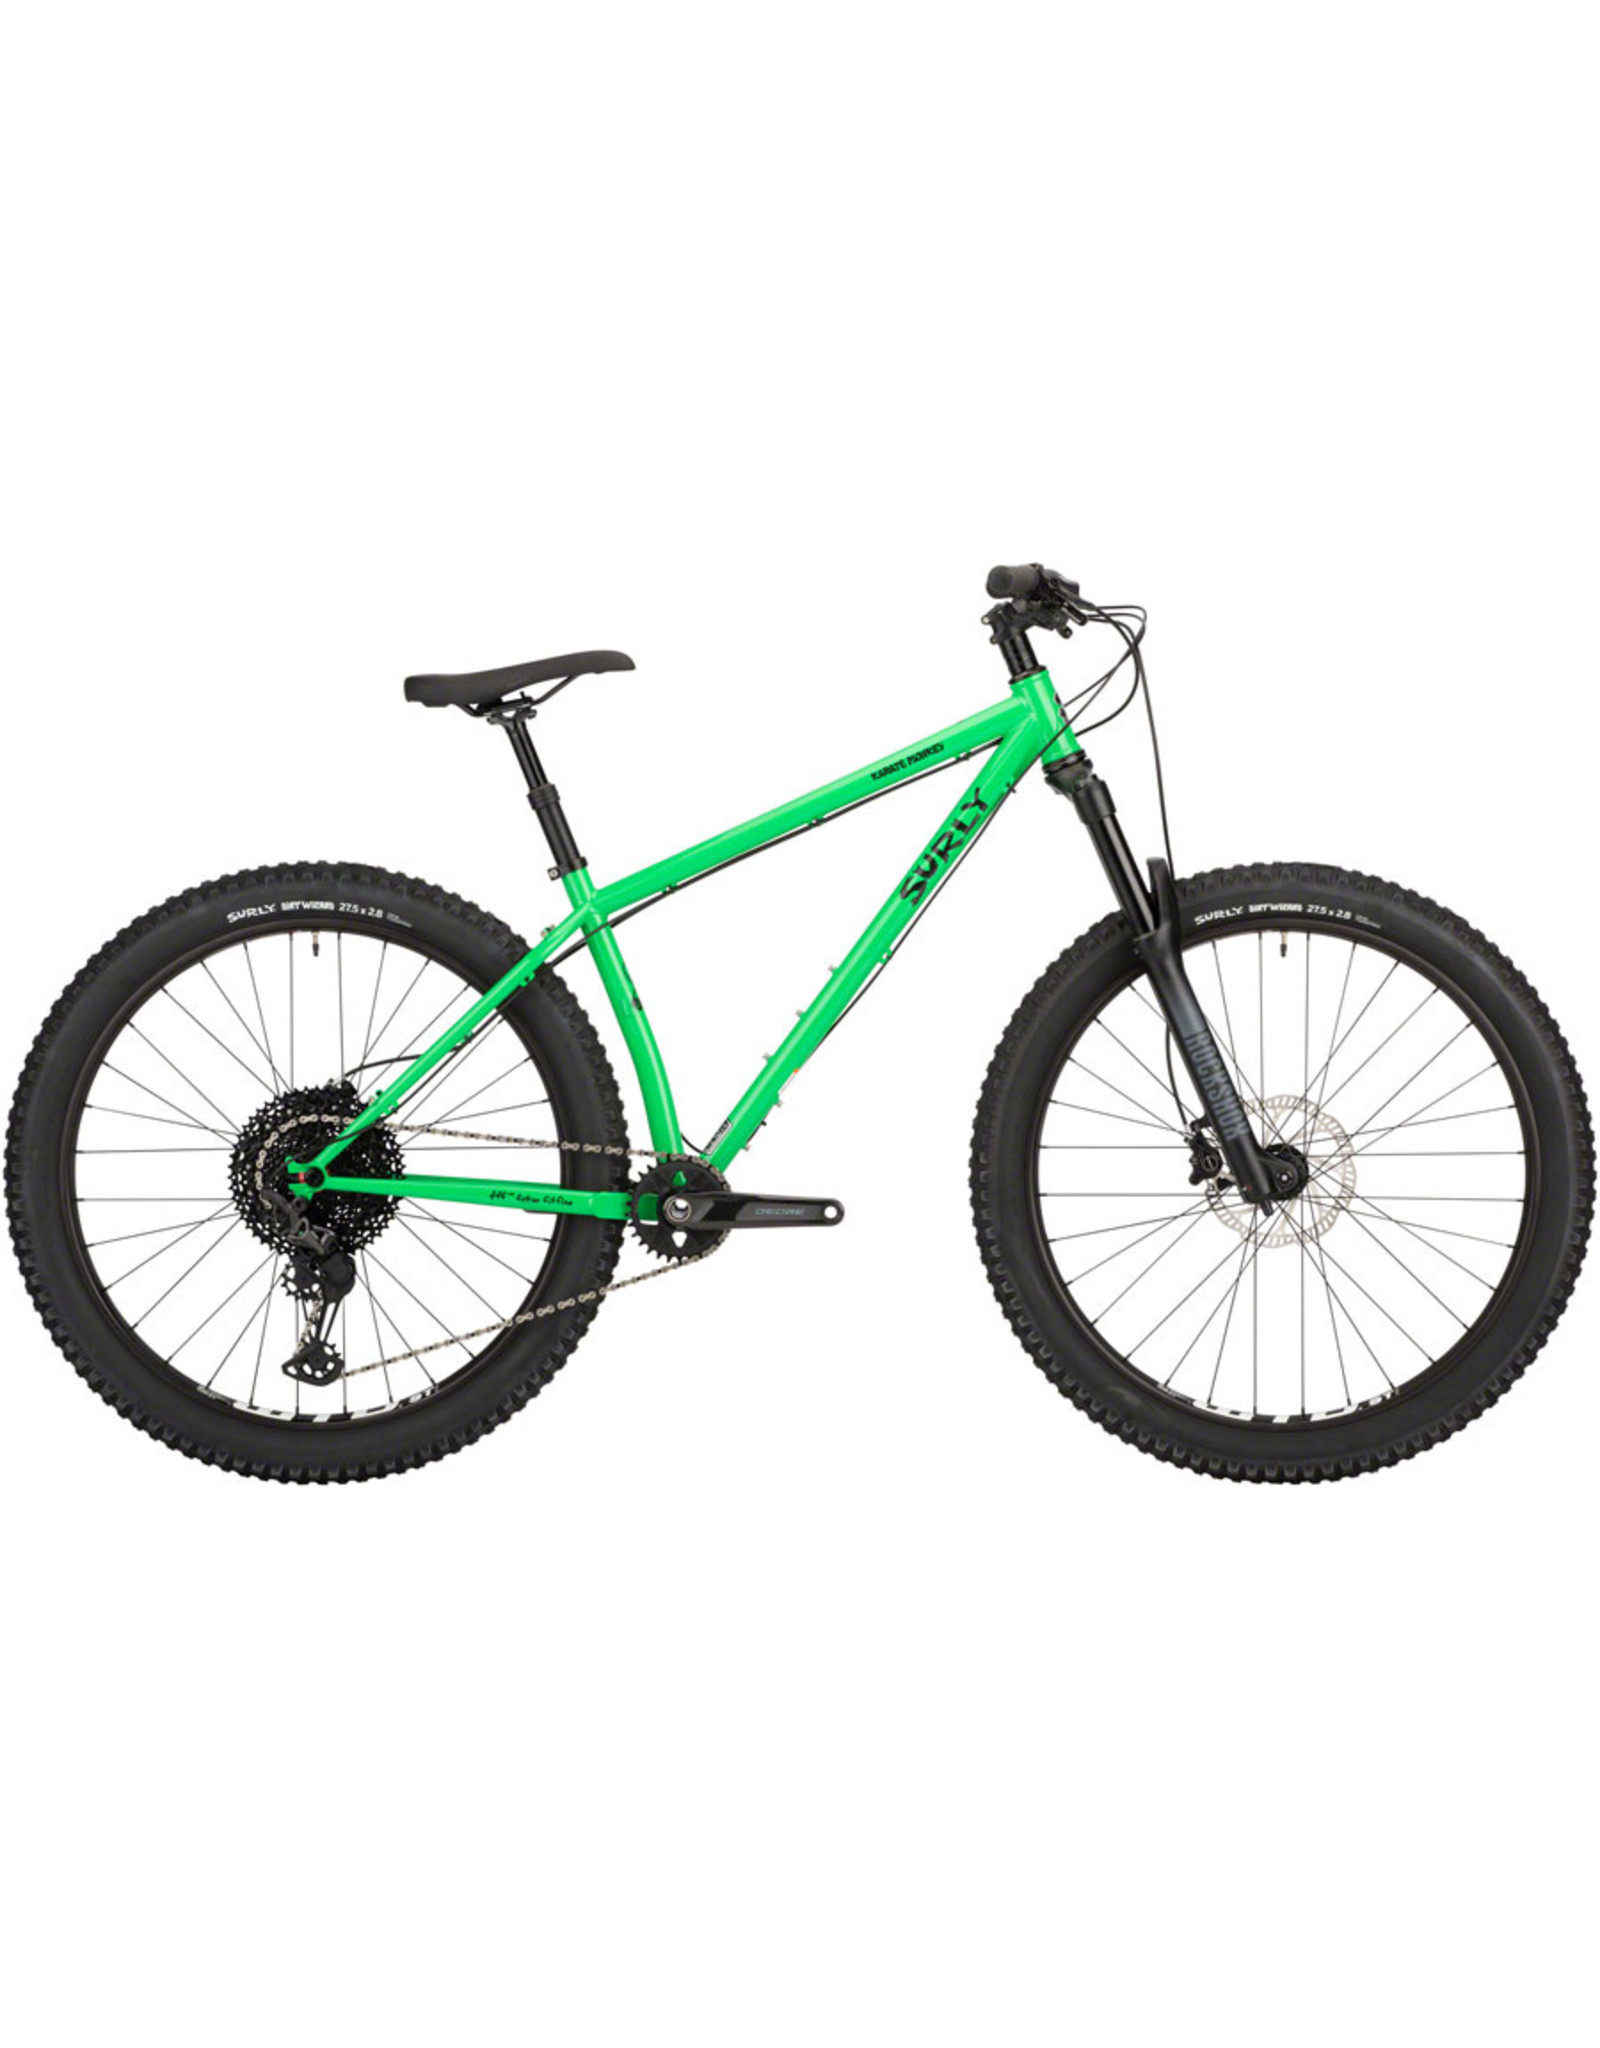 "Surly Surly Karate Monkey Front Suspension Bike - 27.5"", Steel, High Fiber Green"